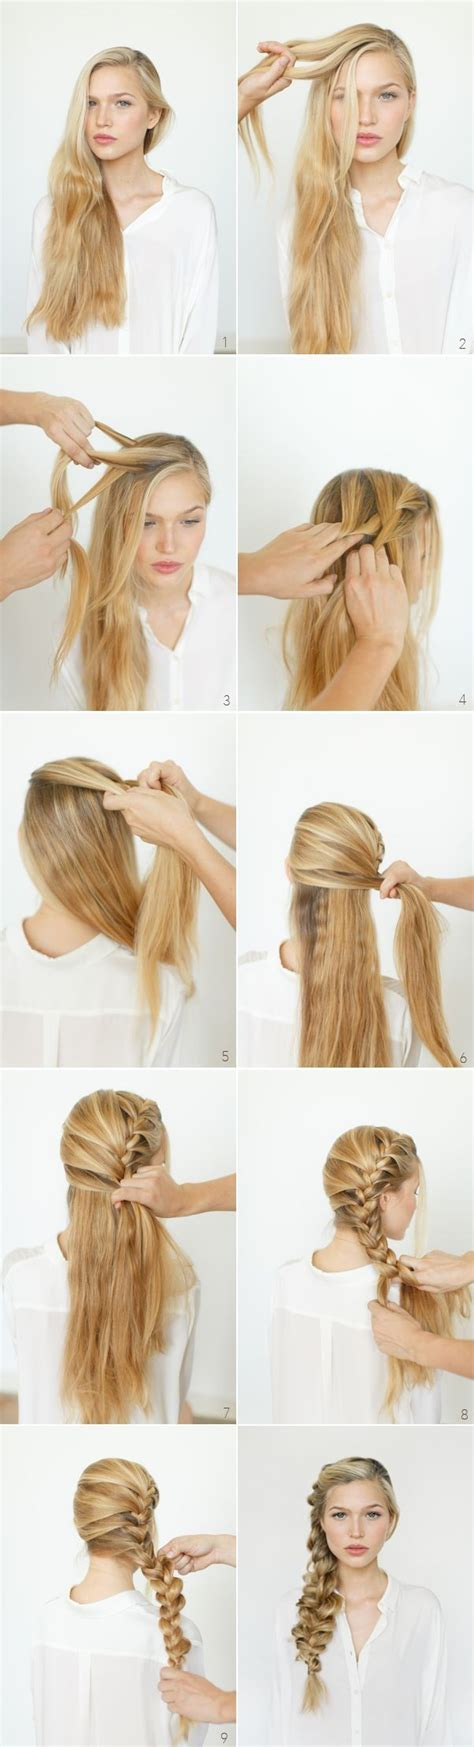 hair styles step by step with pictures step by step hairstyles for long hair long hairstyles